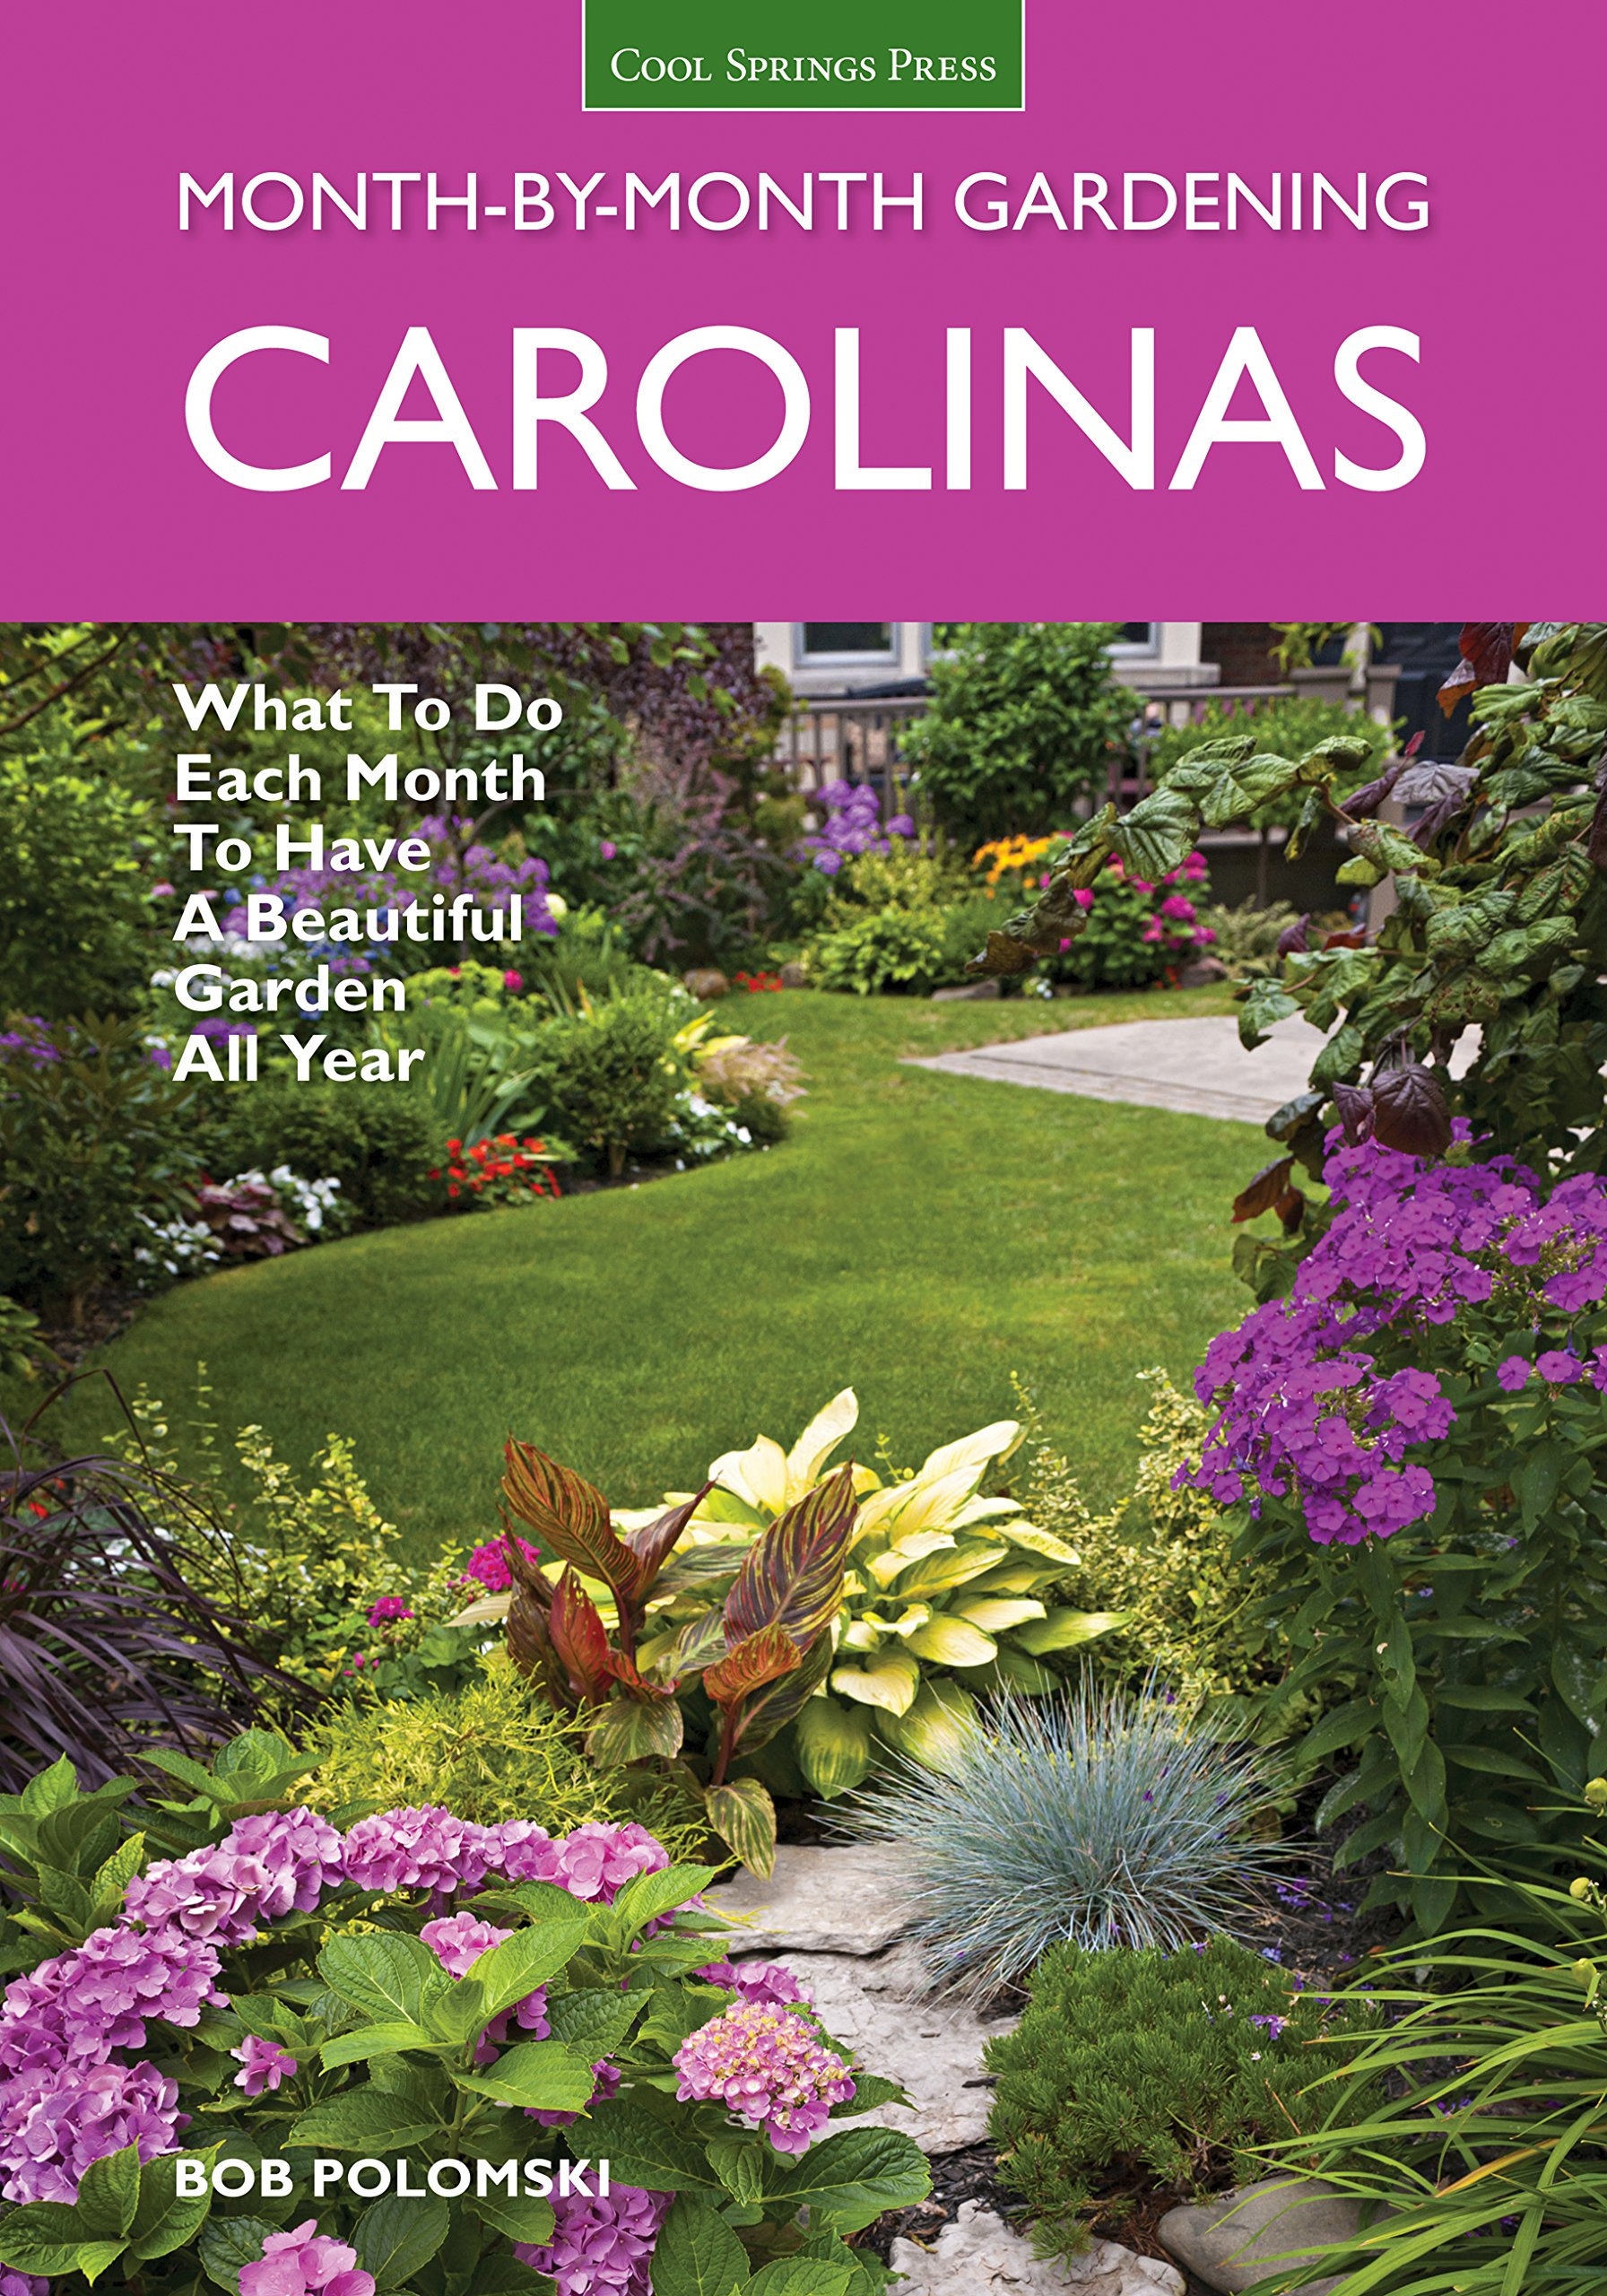 Carolinas Month-by-Month Gardening: What to Do Each Month to Have A Beautiful Garden All Year